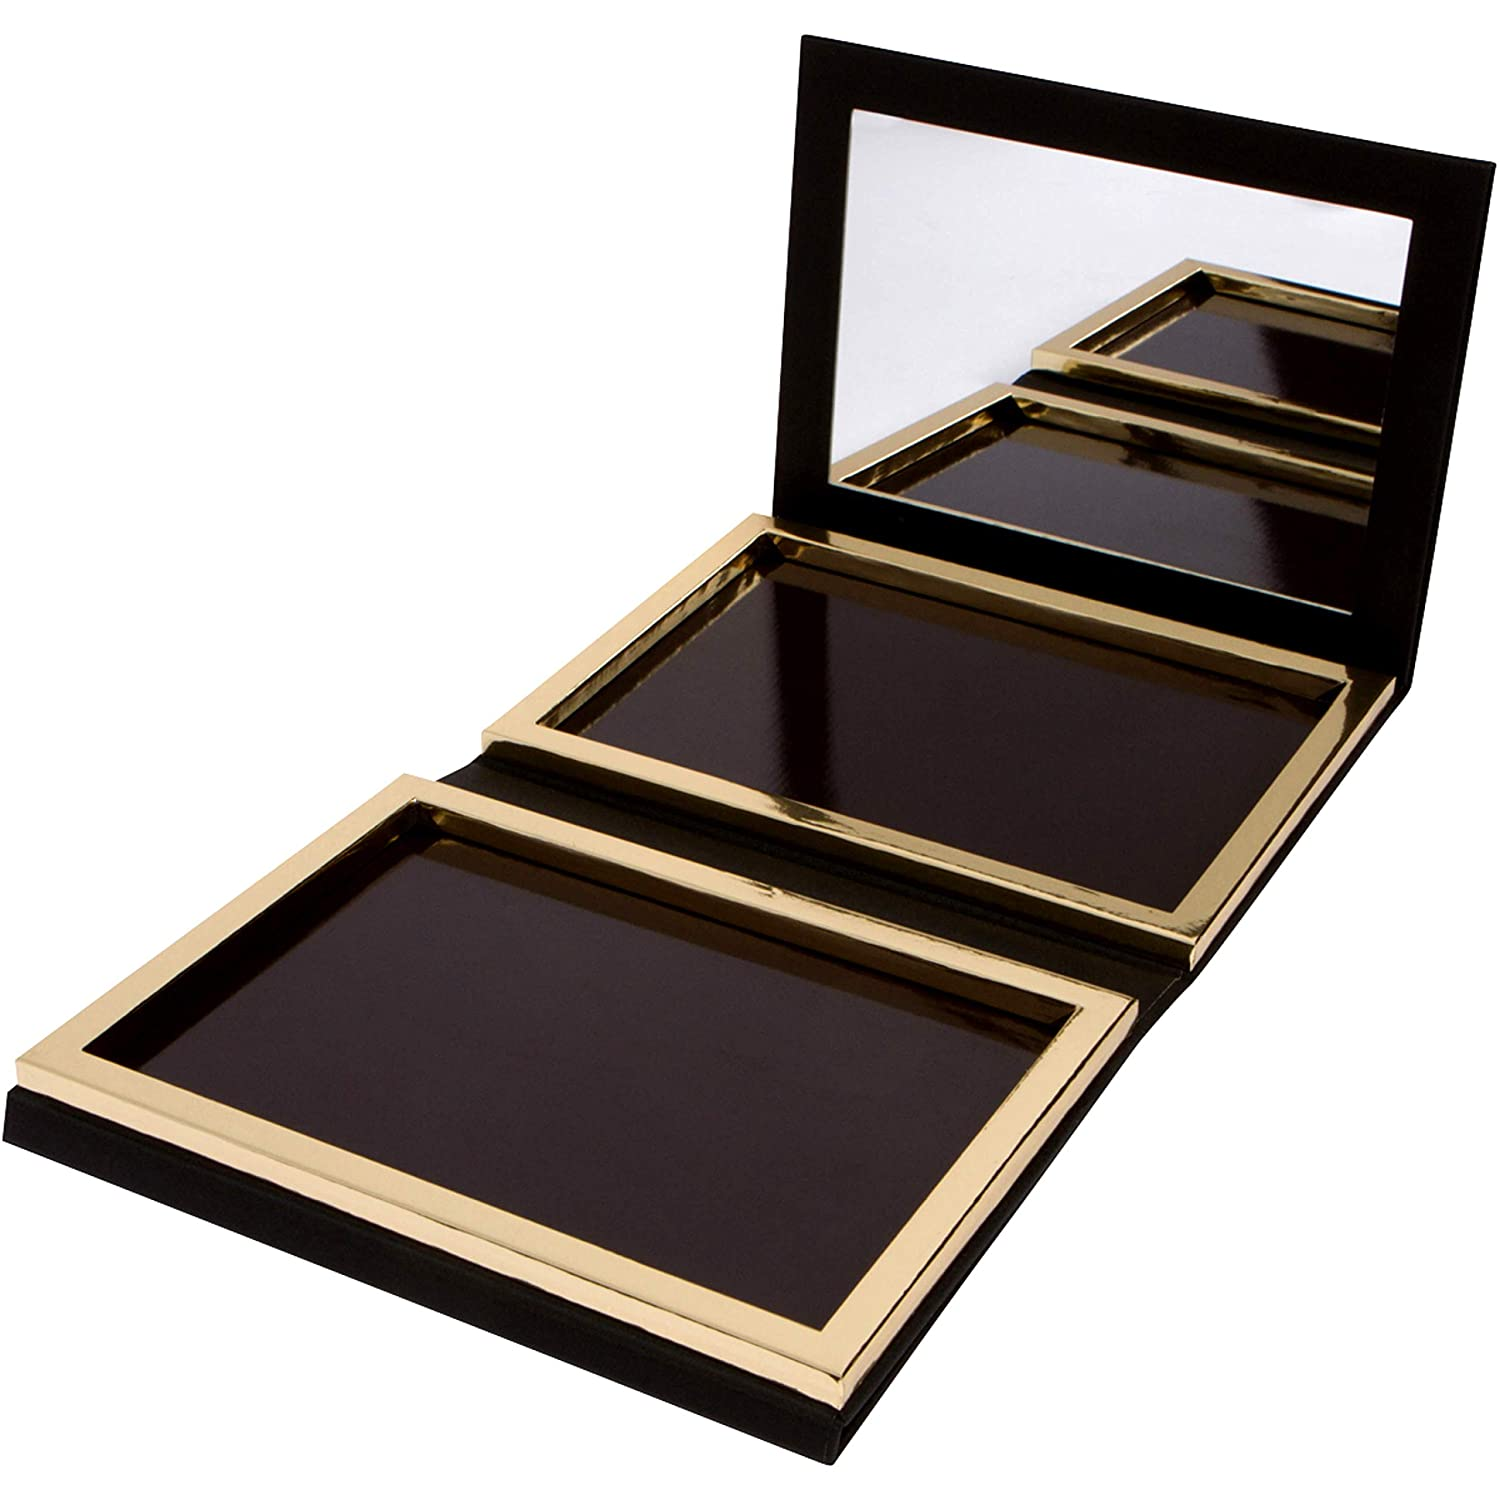 Matte Black Double Sided Empty Magnetic Palette with Mirror; Holds 70 Standard Sized Eyeshadows